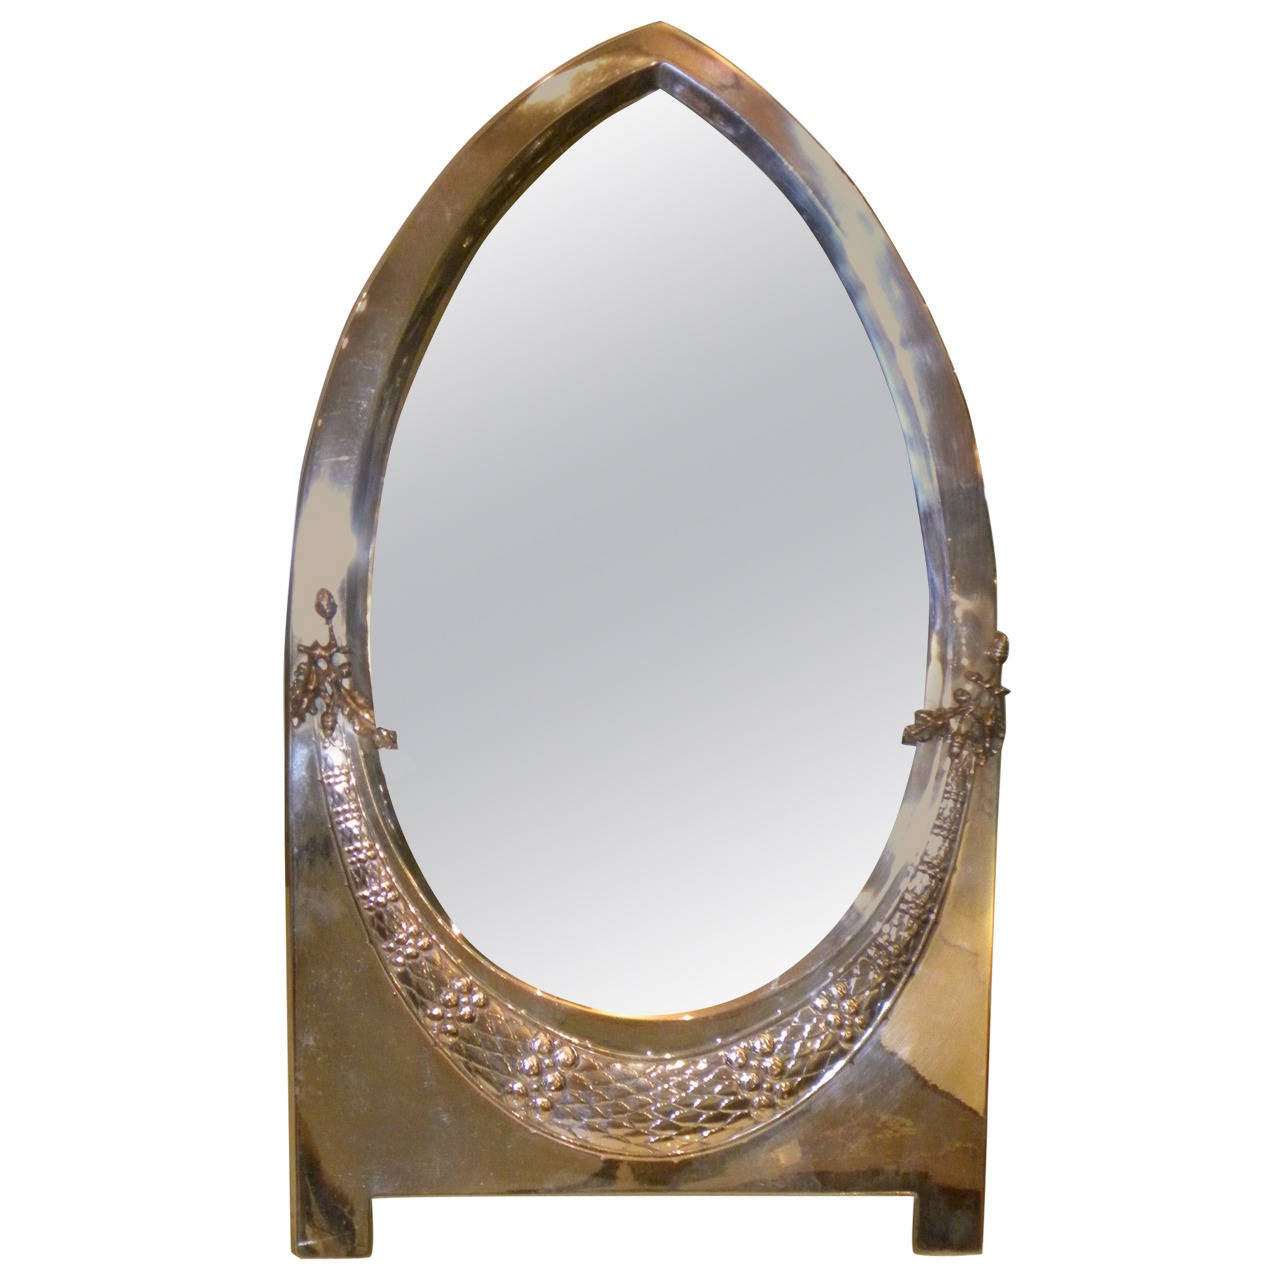 Elegant silver art deco or art nouveau wmf table mirror for Mirrors for sale